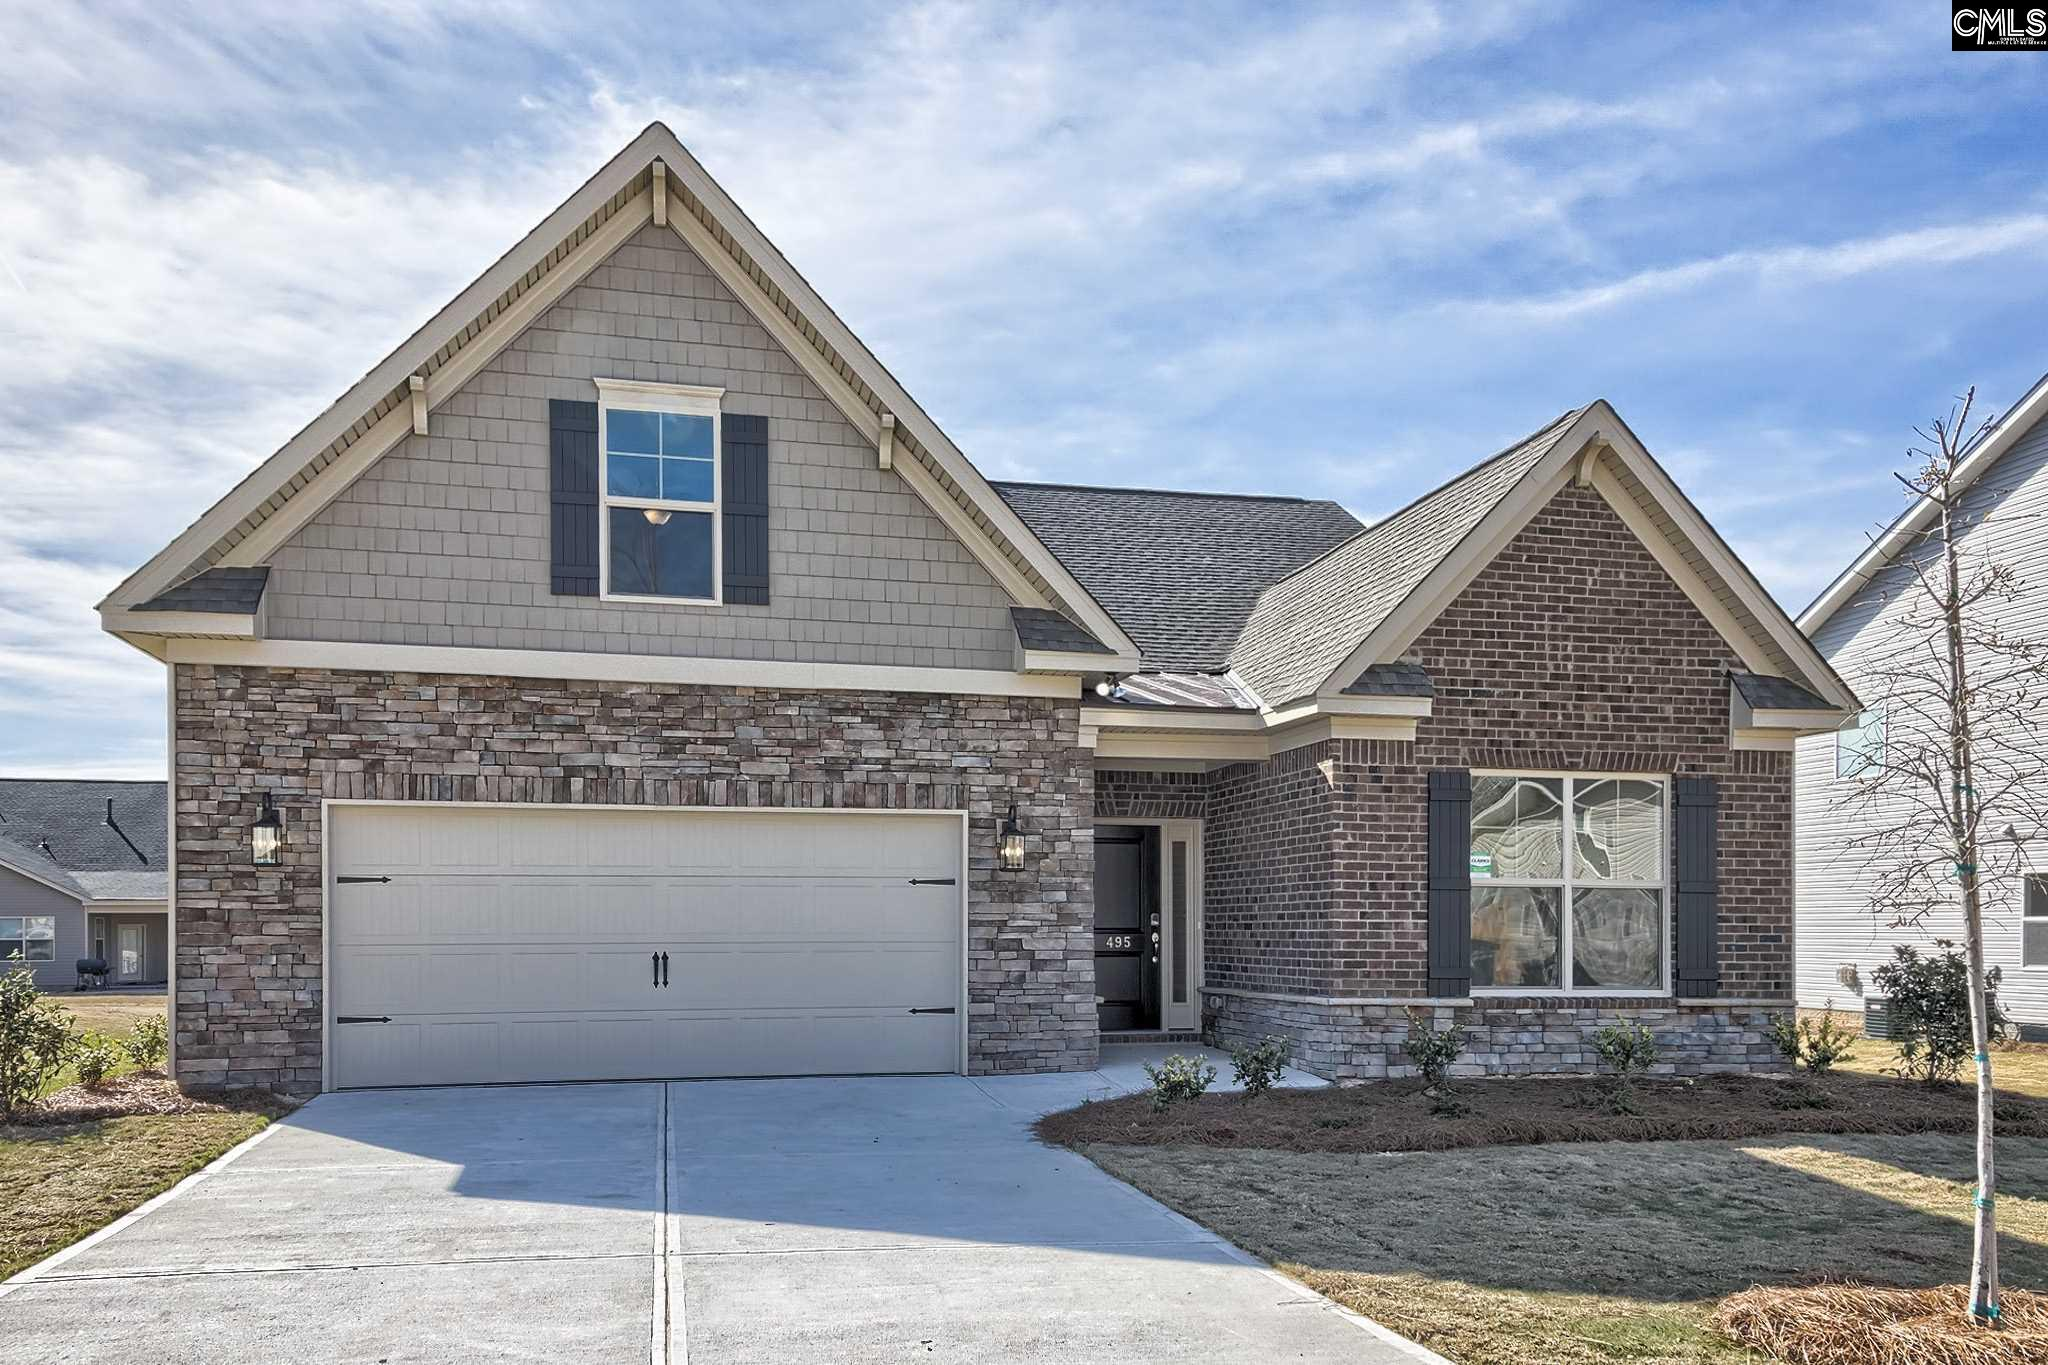 495 Maple Valley Blythewood, SC 29016